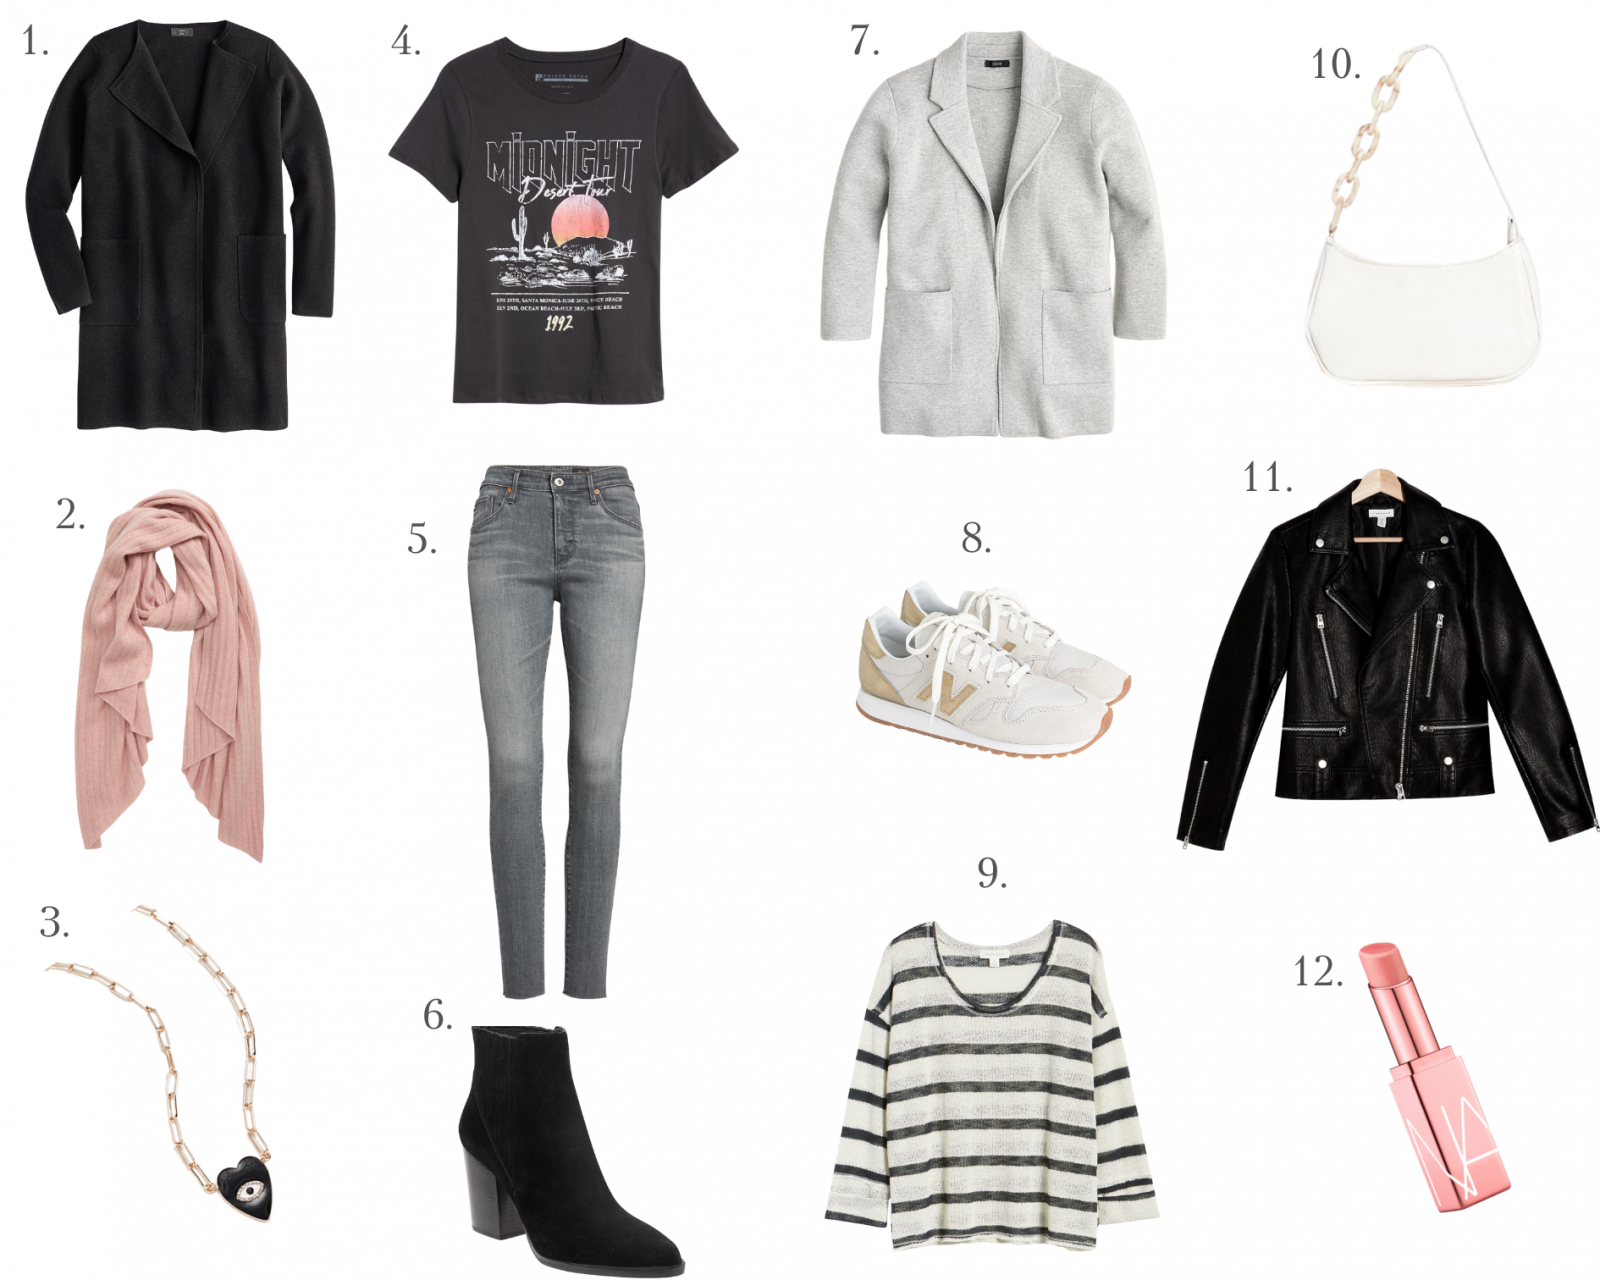 tips for spending your fall clothing money